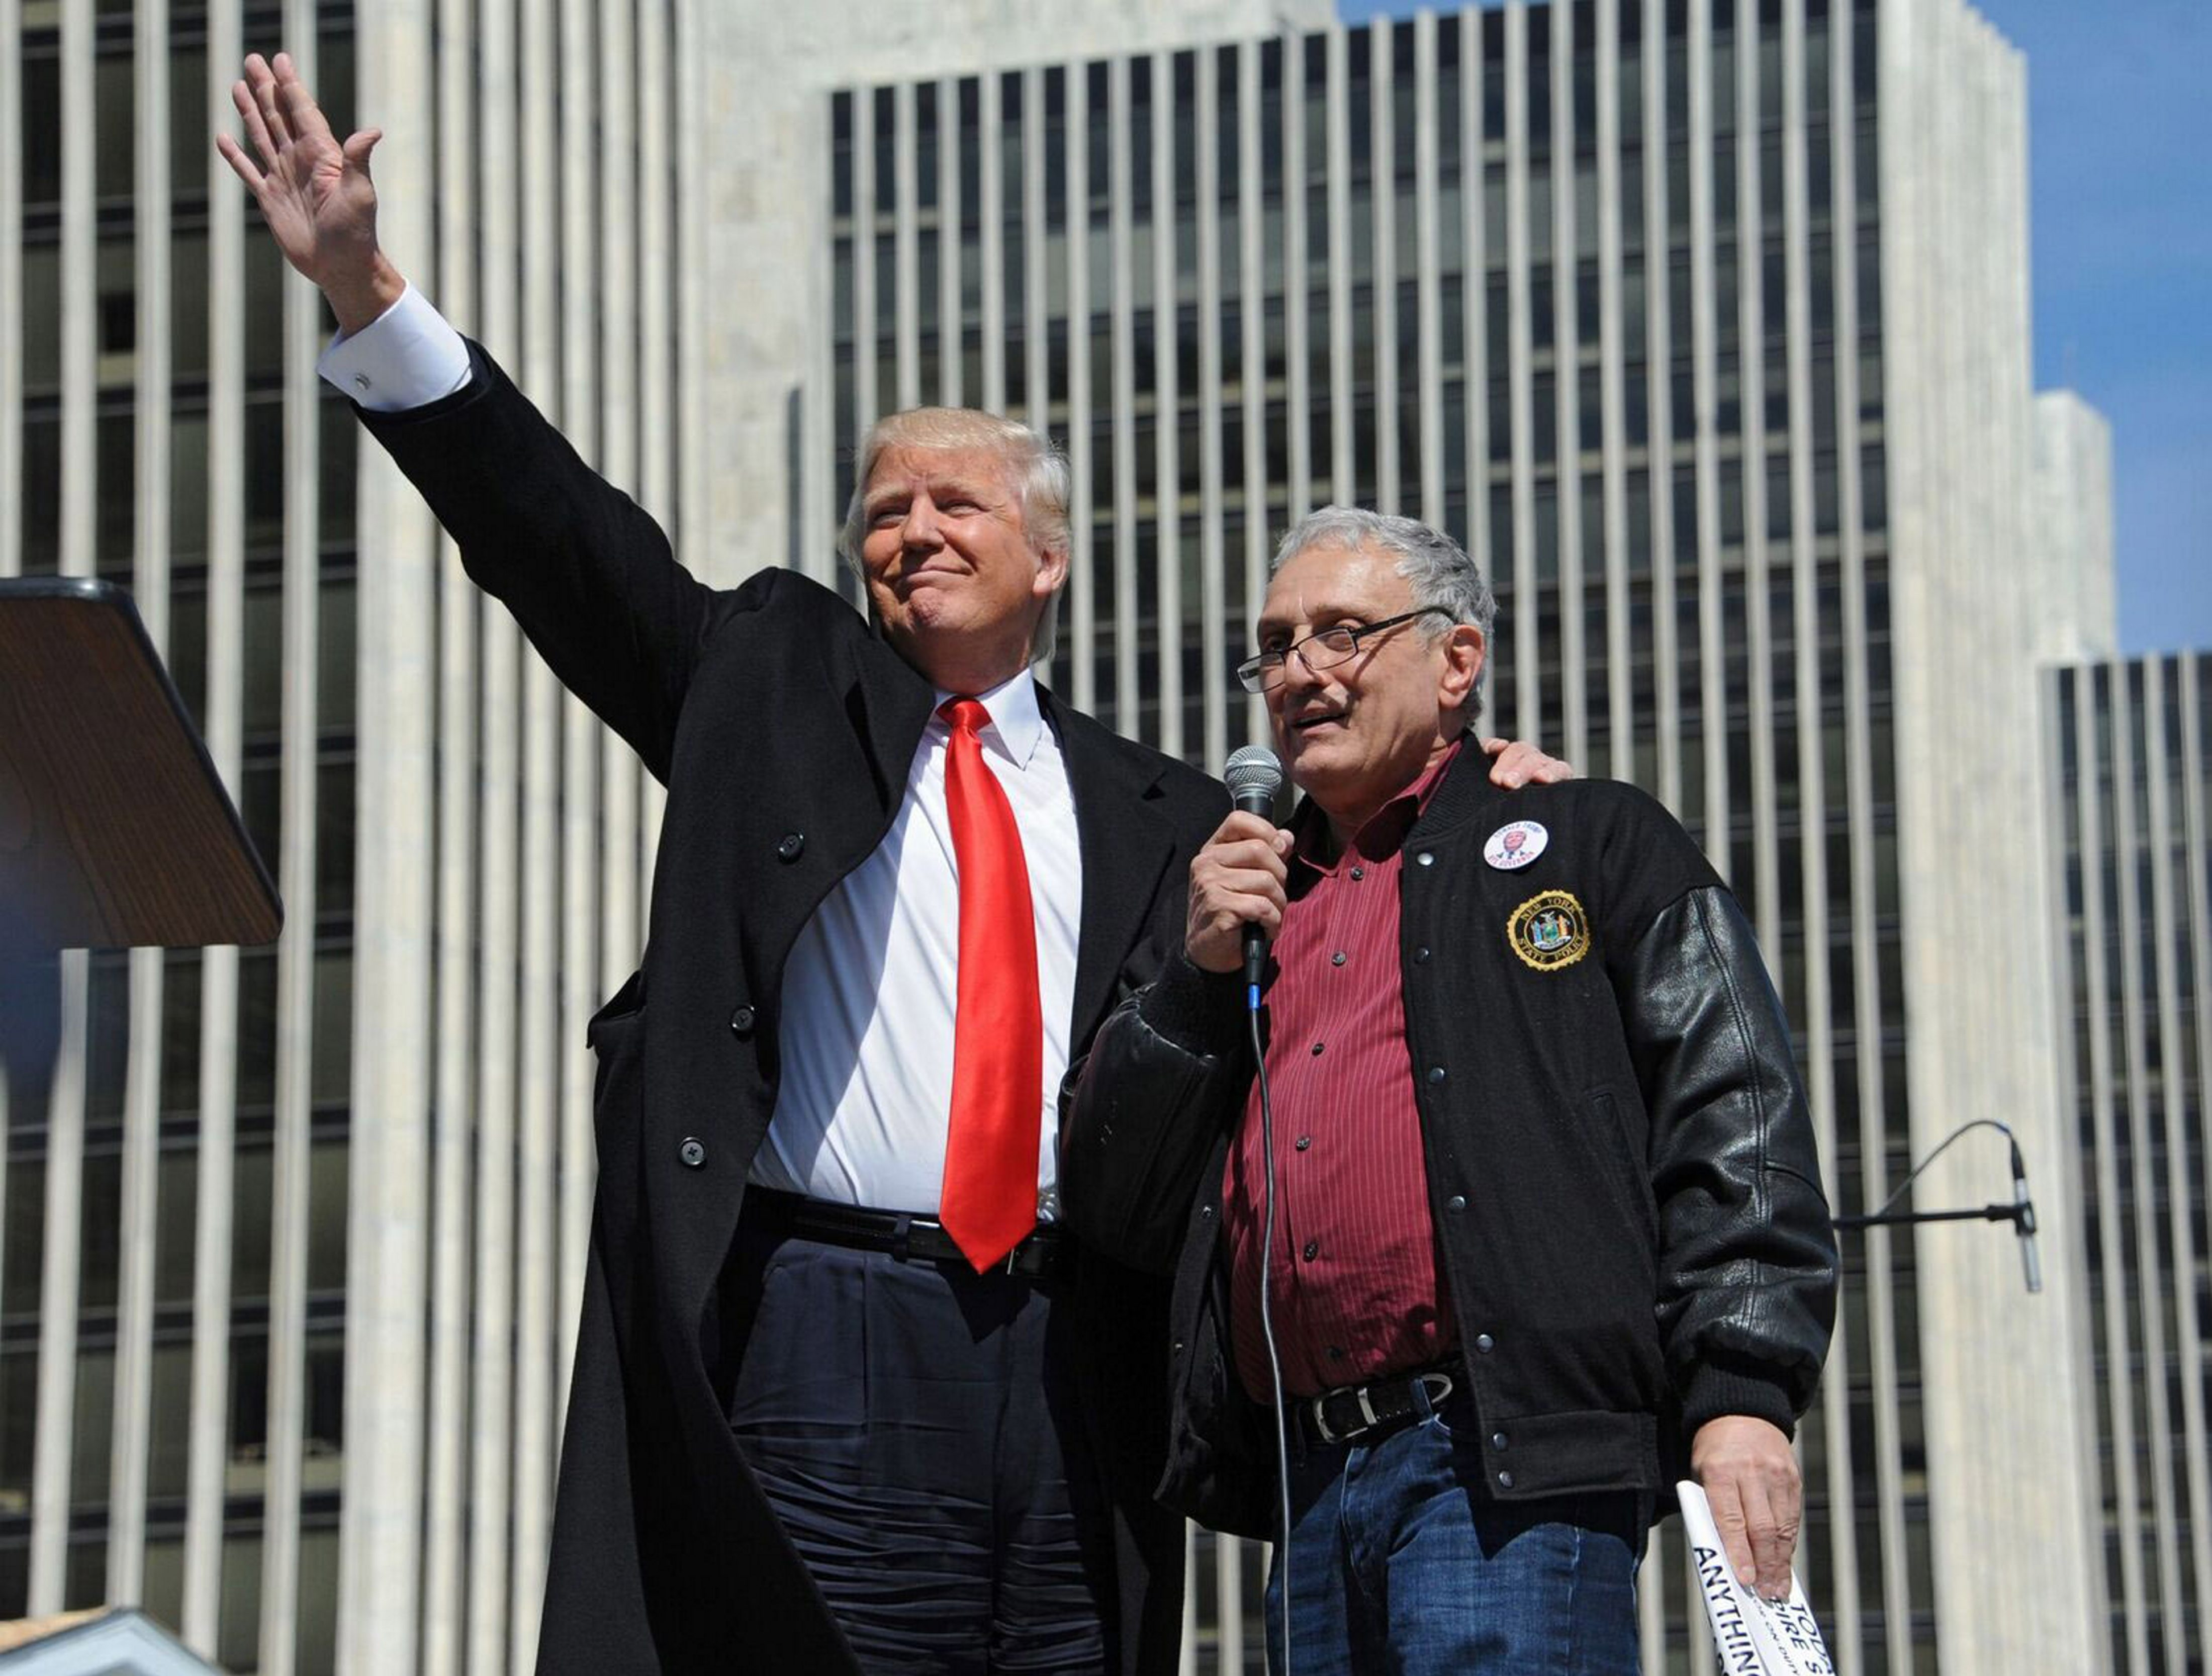 With Carl Paladino at the microphone, Donald Trump acknowledges crowd at Empire State Plaza in Albany in April 2014 at a Second Amendment rally seeking the repeal of SAFE Act gun-control law signed by Gov. Andrew M. Cuomo.